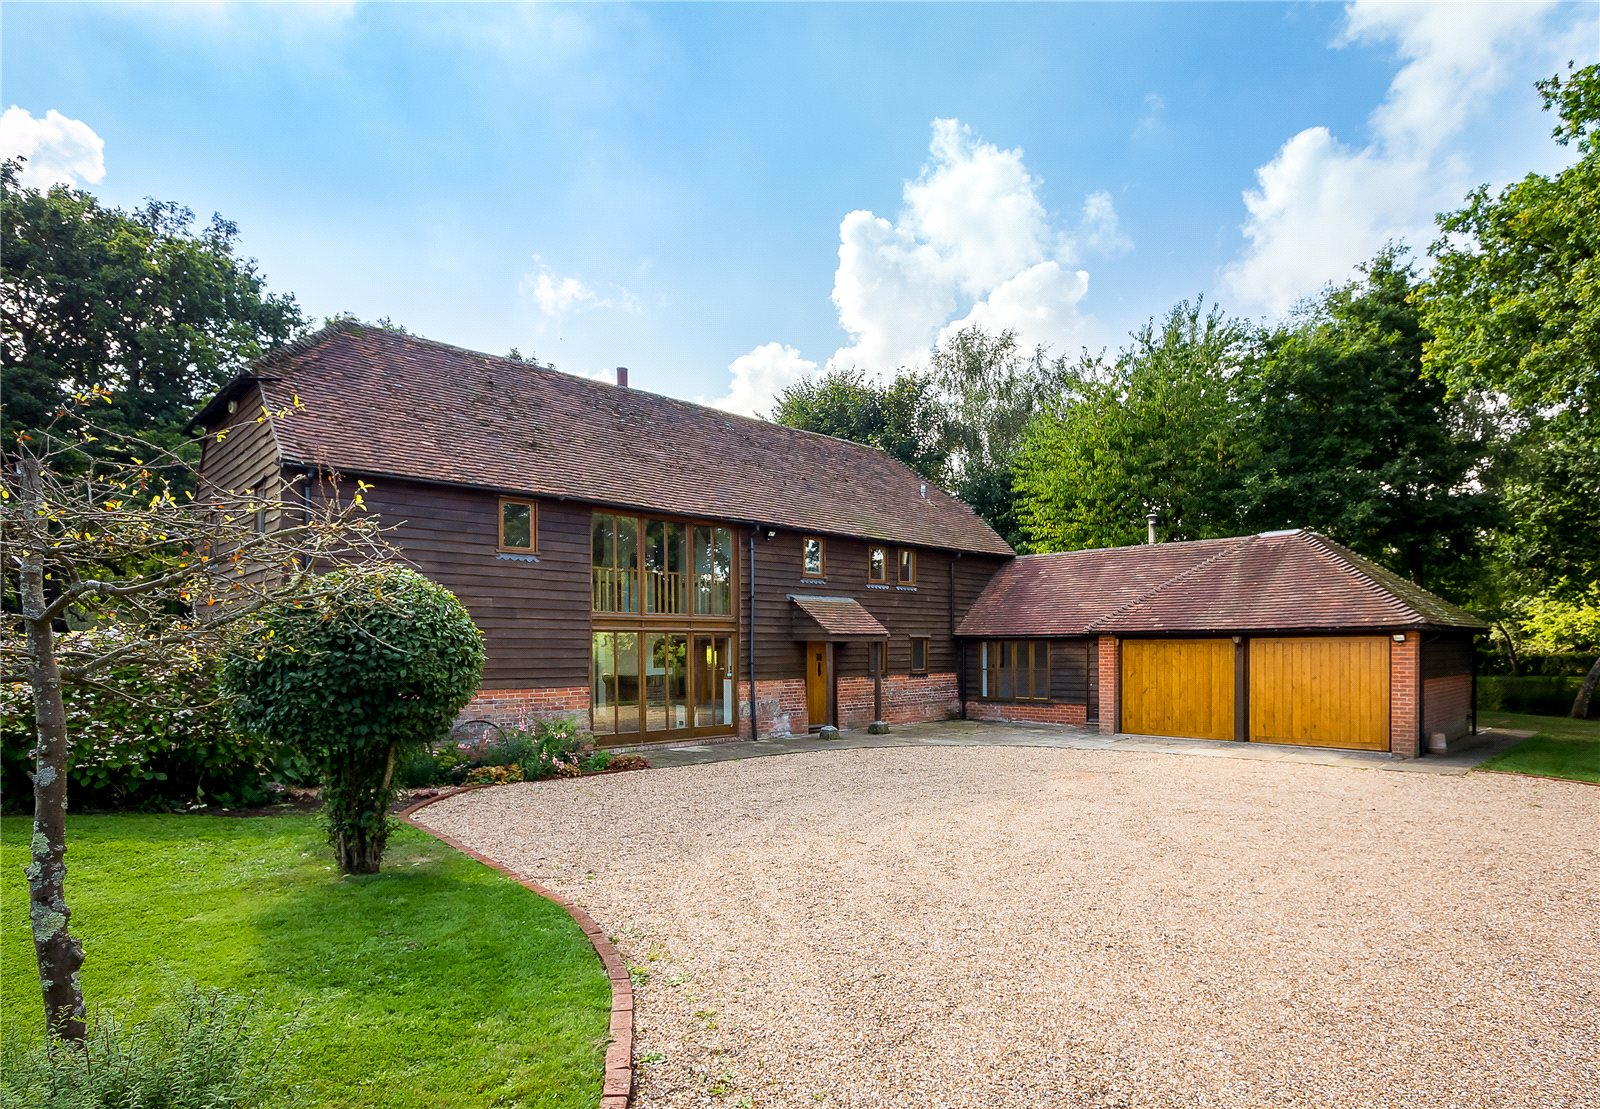 Villa per Vendita alle ore Muttons Lane, Ashington, Pulborough, West Sussex, RH20 Pulborough, Inghilterra